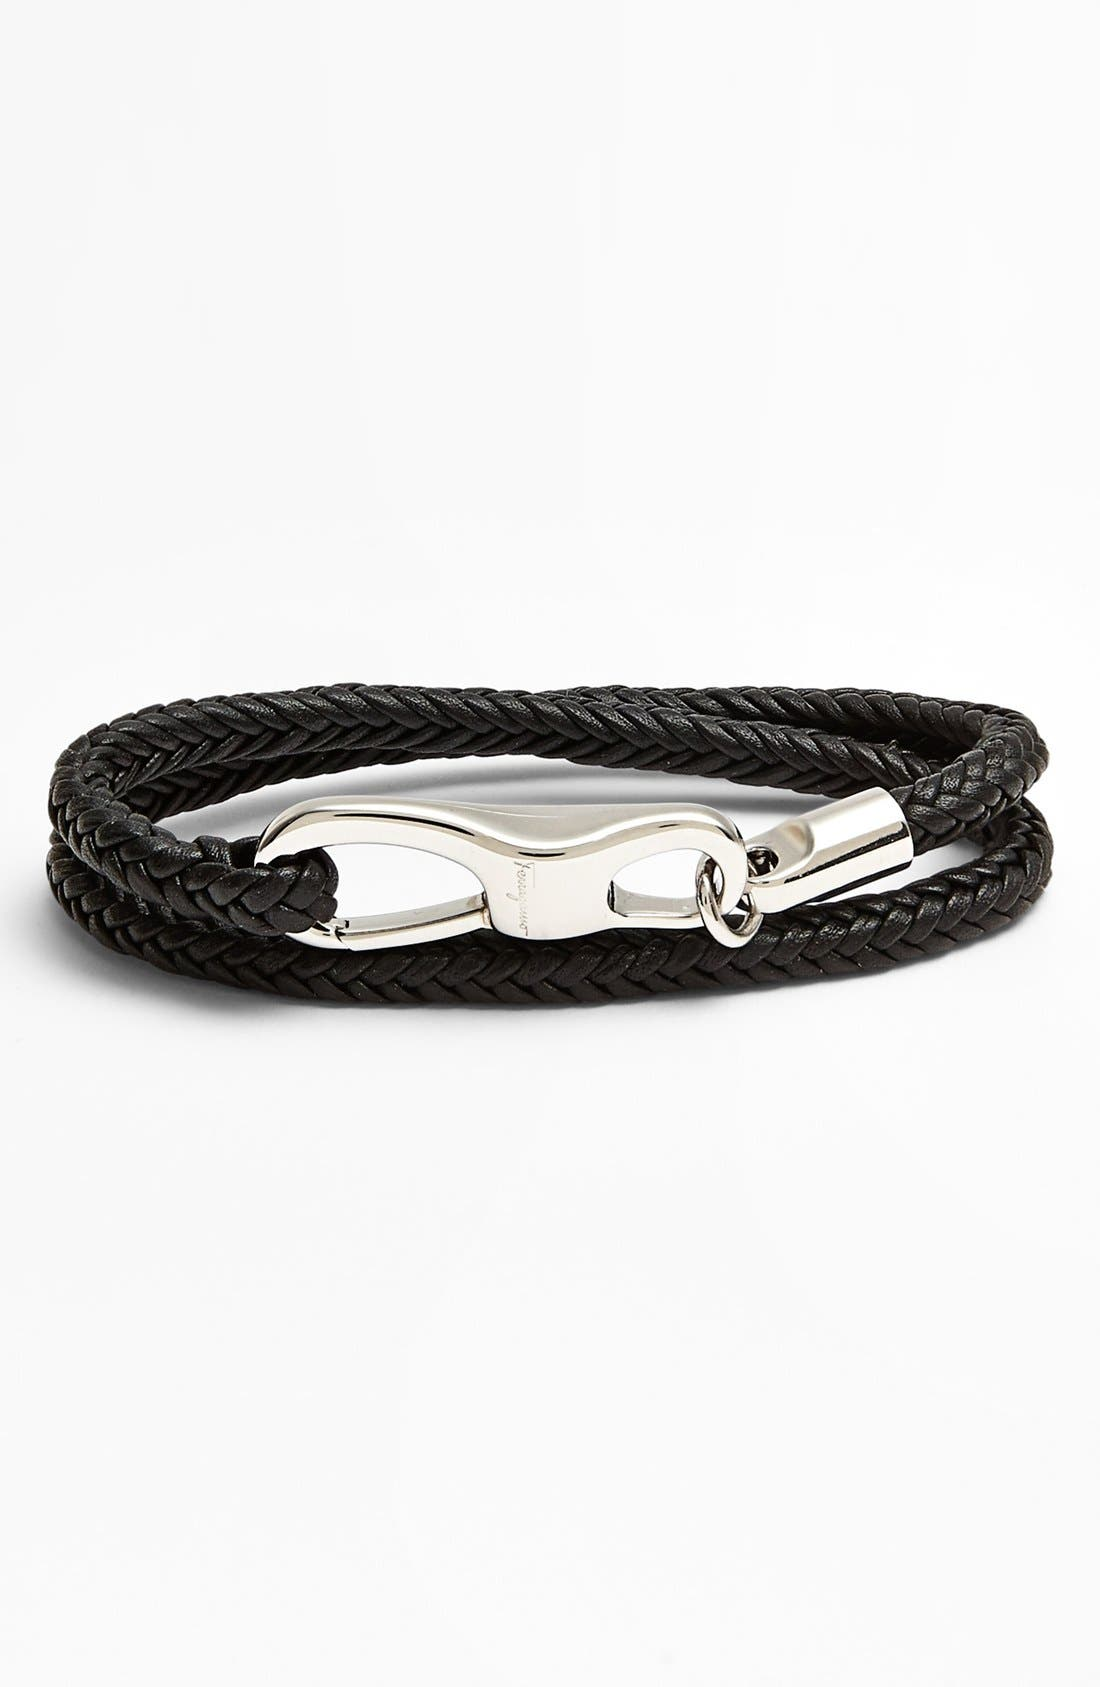 Alternate Image 1 Selected - Salvatore Ferragamo Braided Leather Bracelet